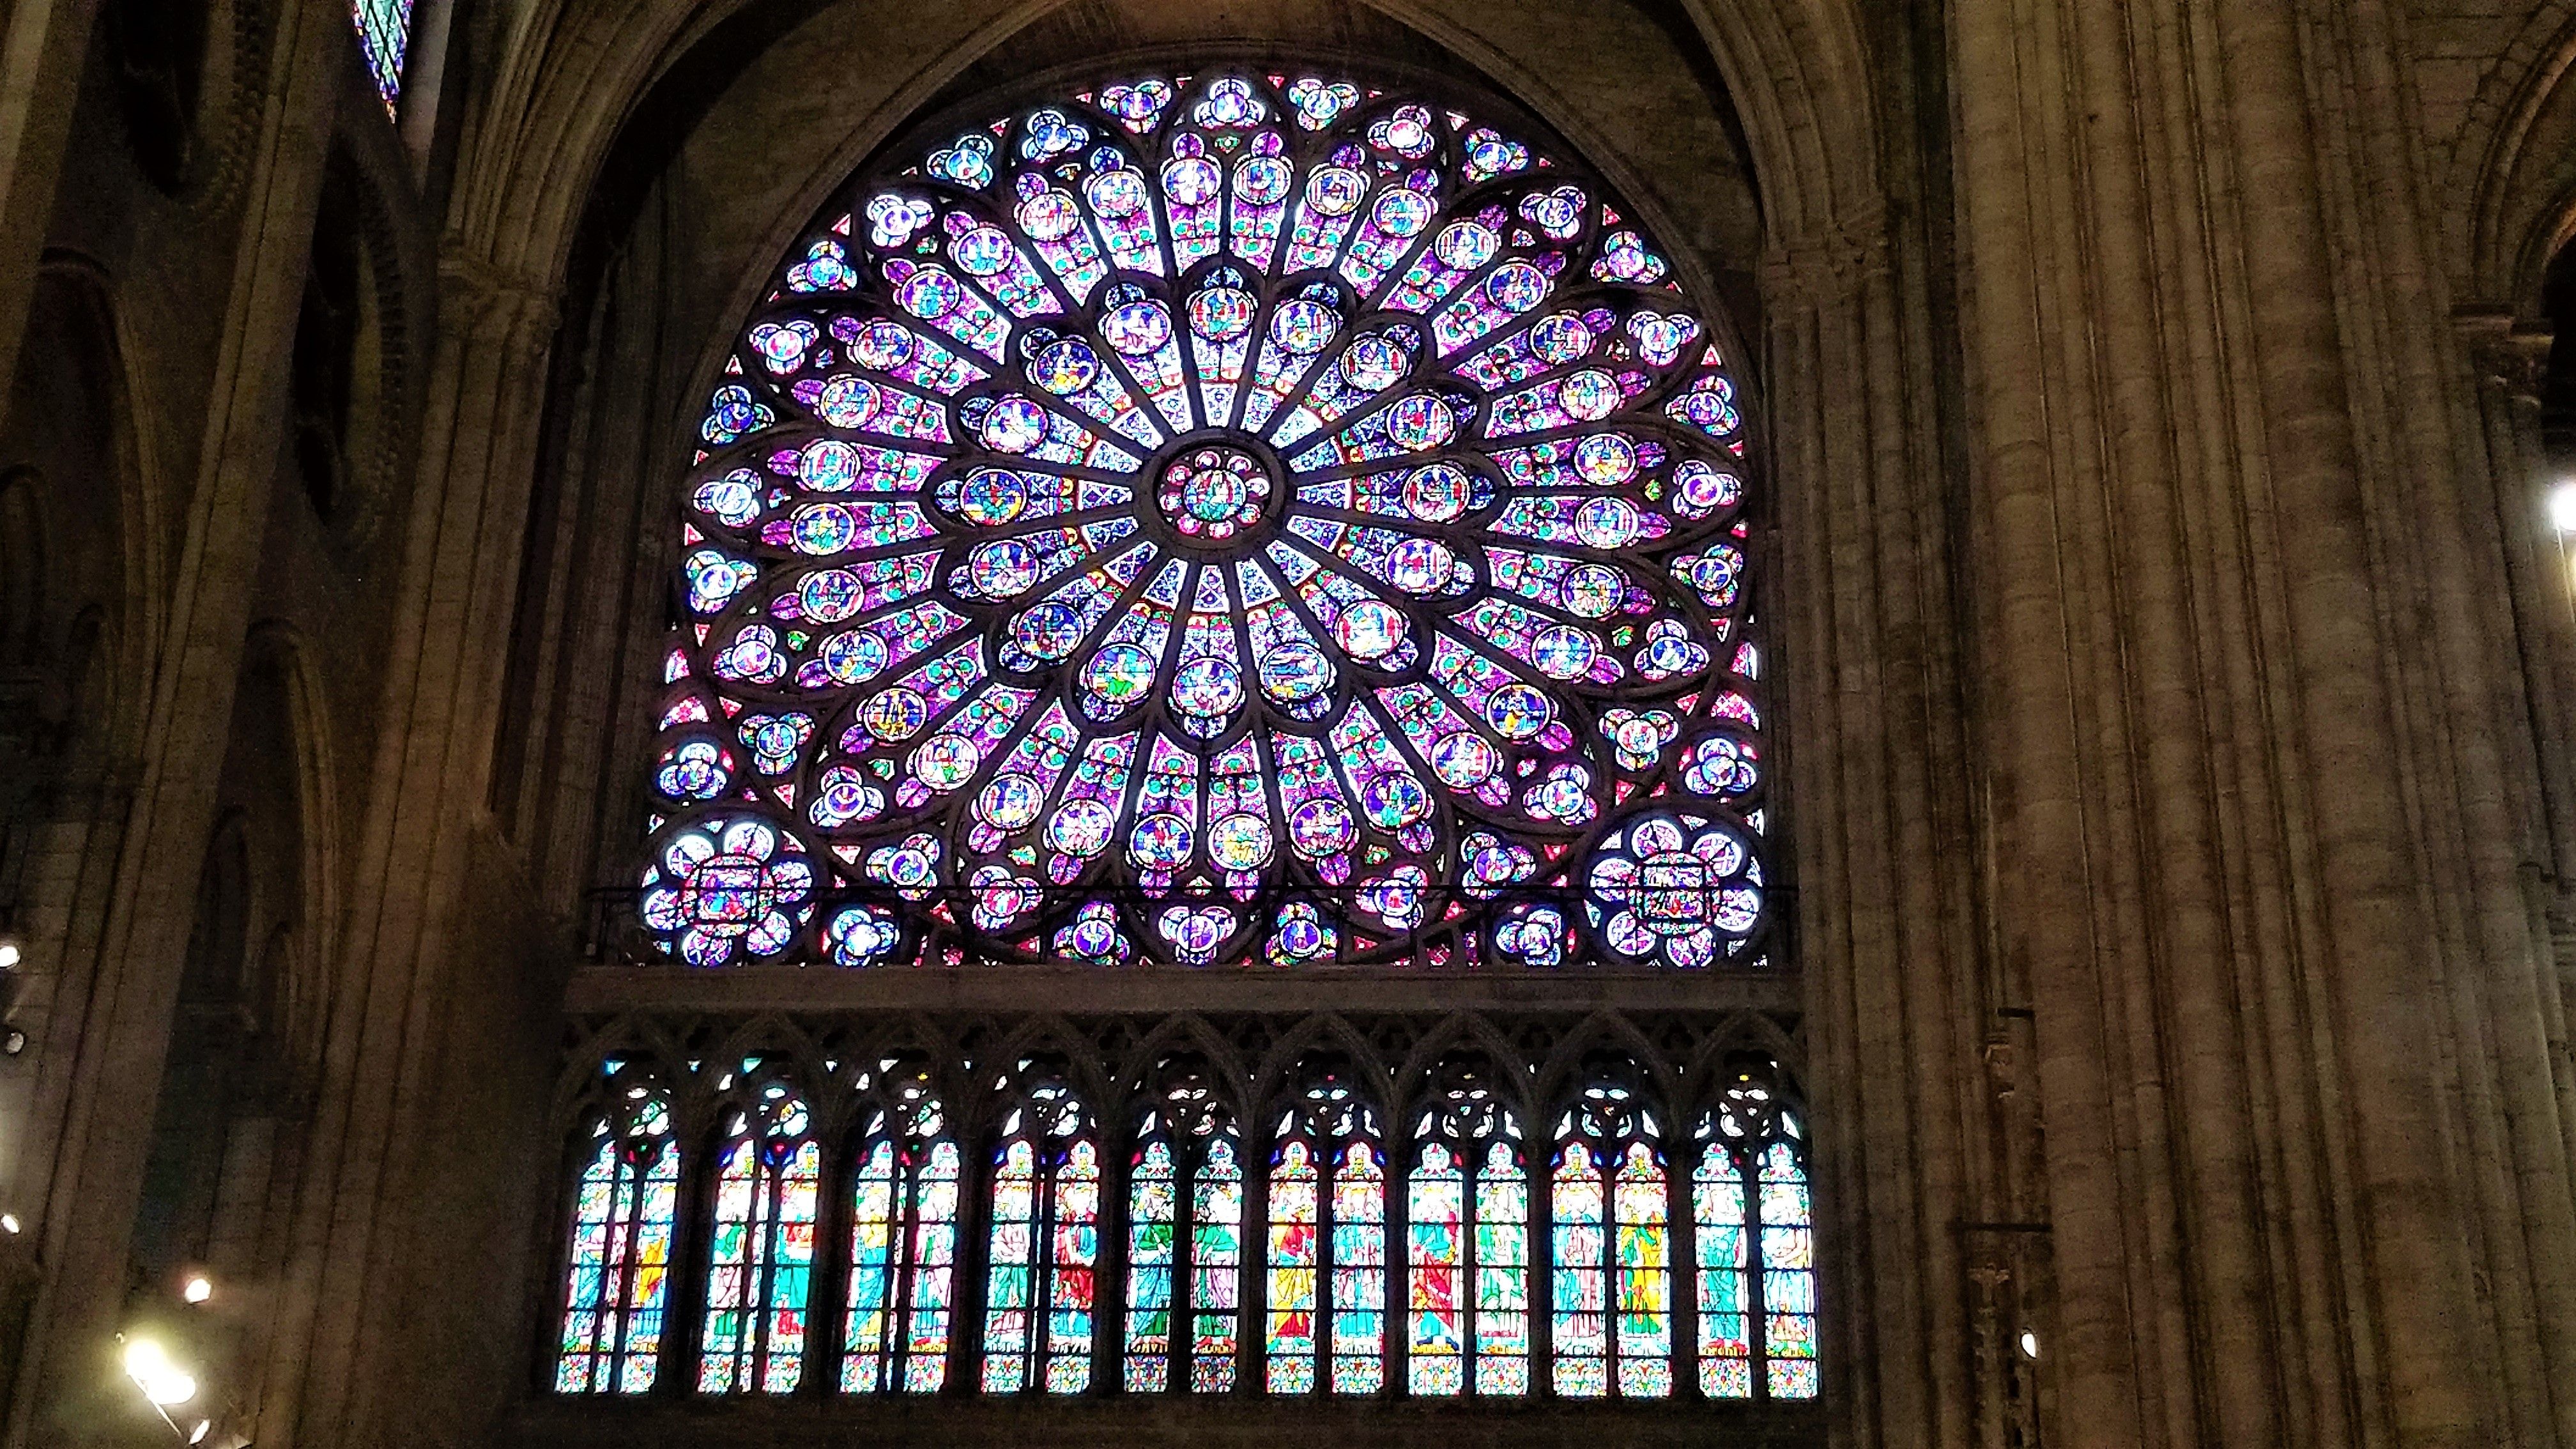 Close up of the stained glass window